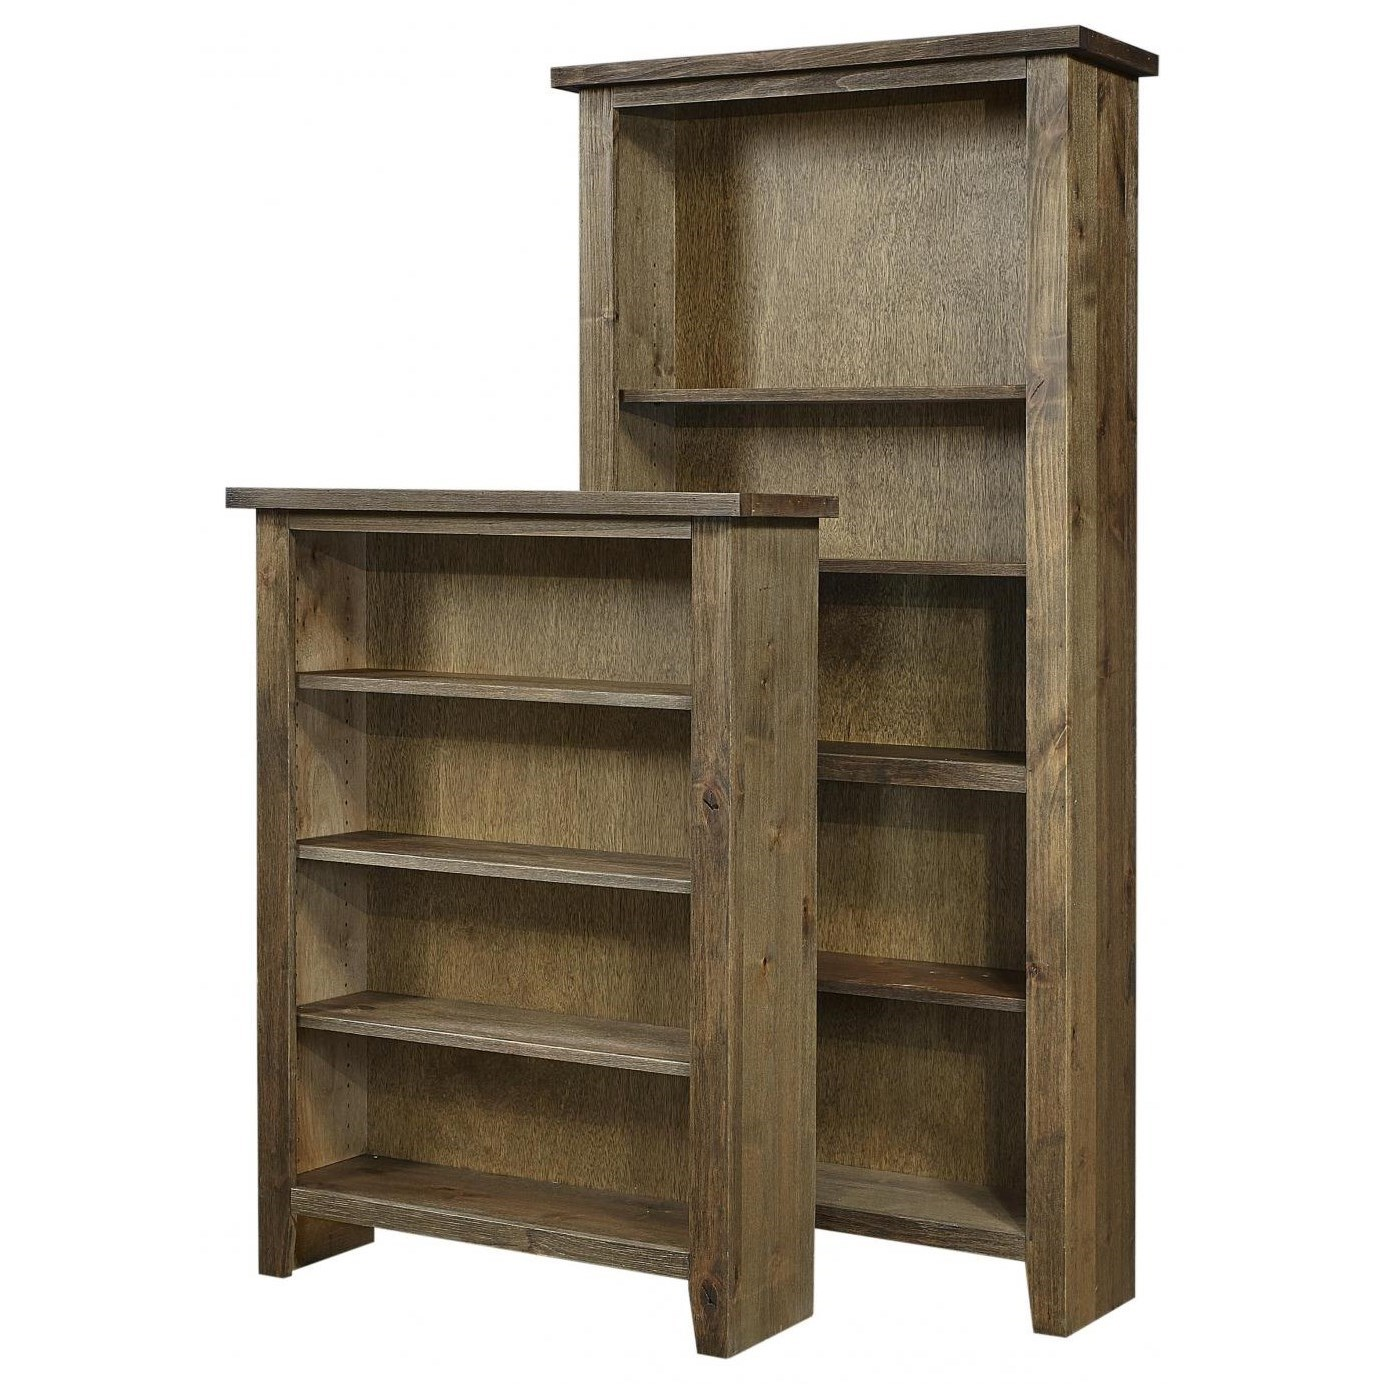 "Alder Grove Bookcase 74"" H with 4 Shelves by Aspenhome at Walker's Furniture"